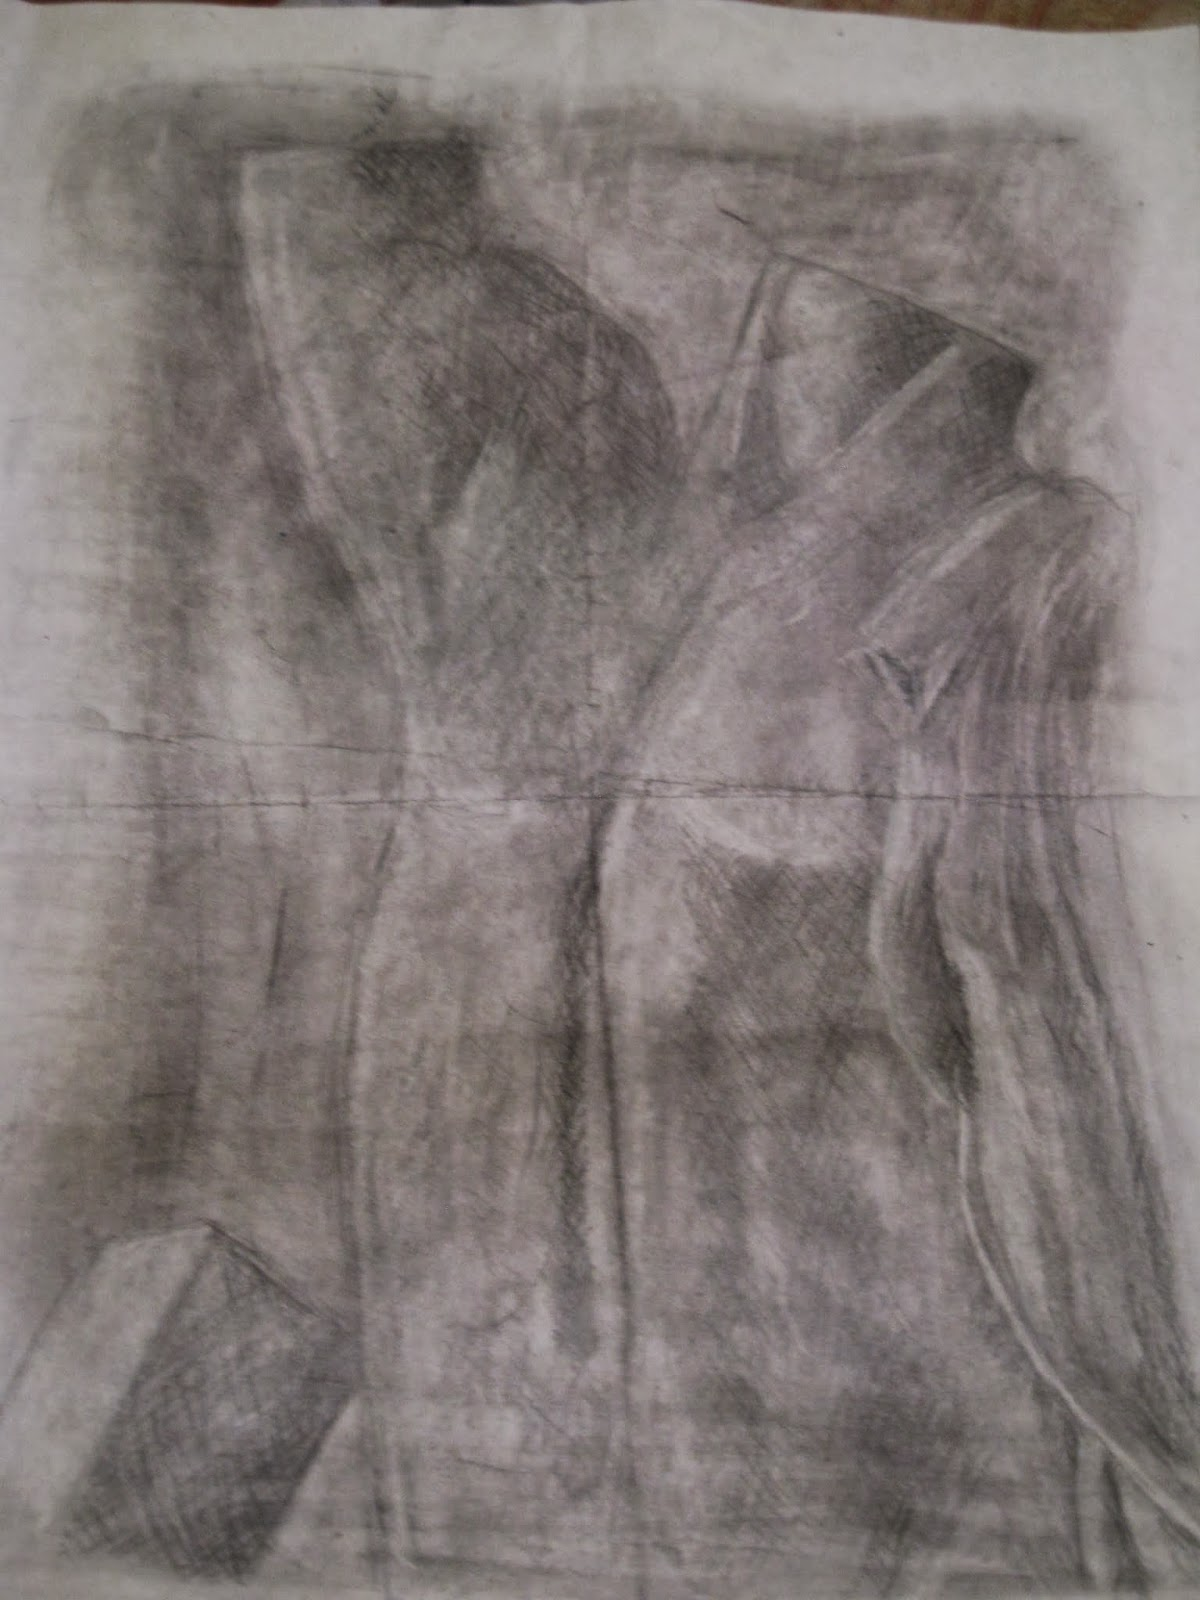 Upside Down Contour Line Drawing : Contour drawing quot upside down picasso neutral ground